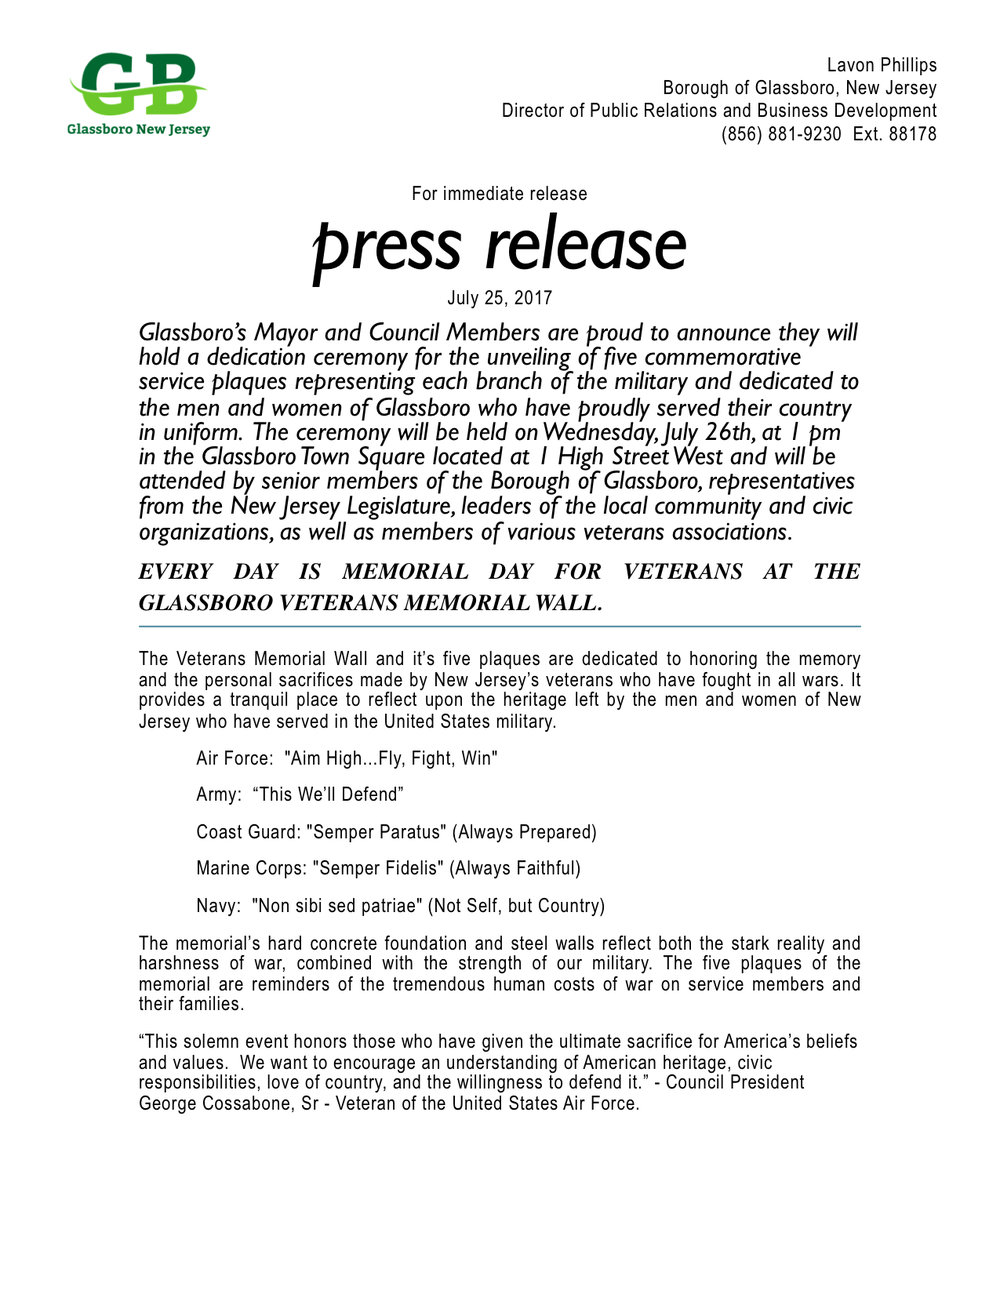 Glassboro NJ Press Release - Dedication of five branches of military crests .jpeg